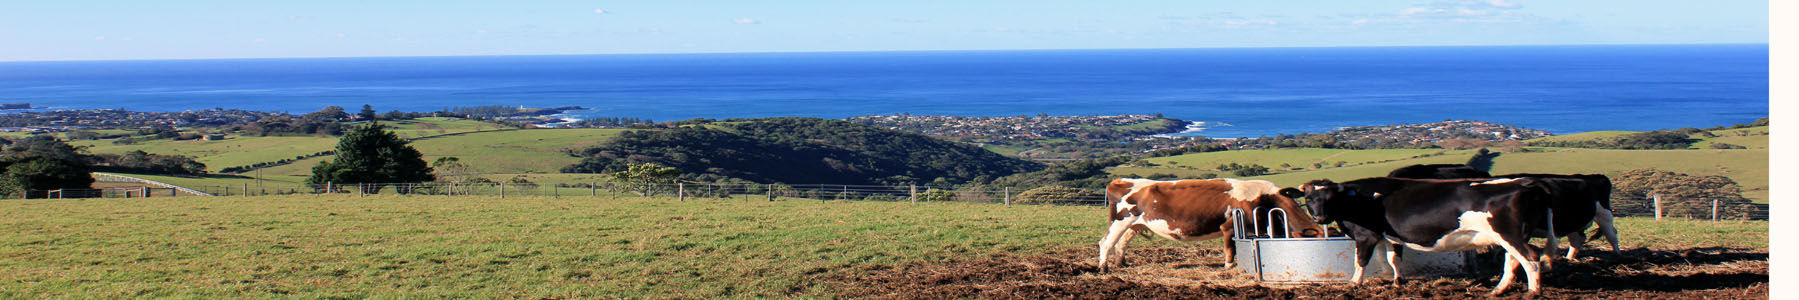 Farmland by the sea on the South Coast NSW